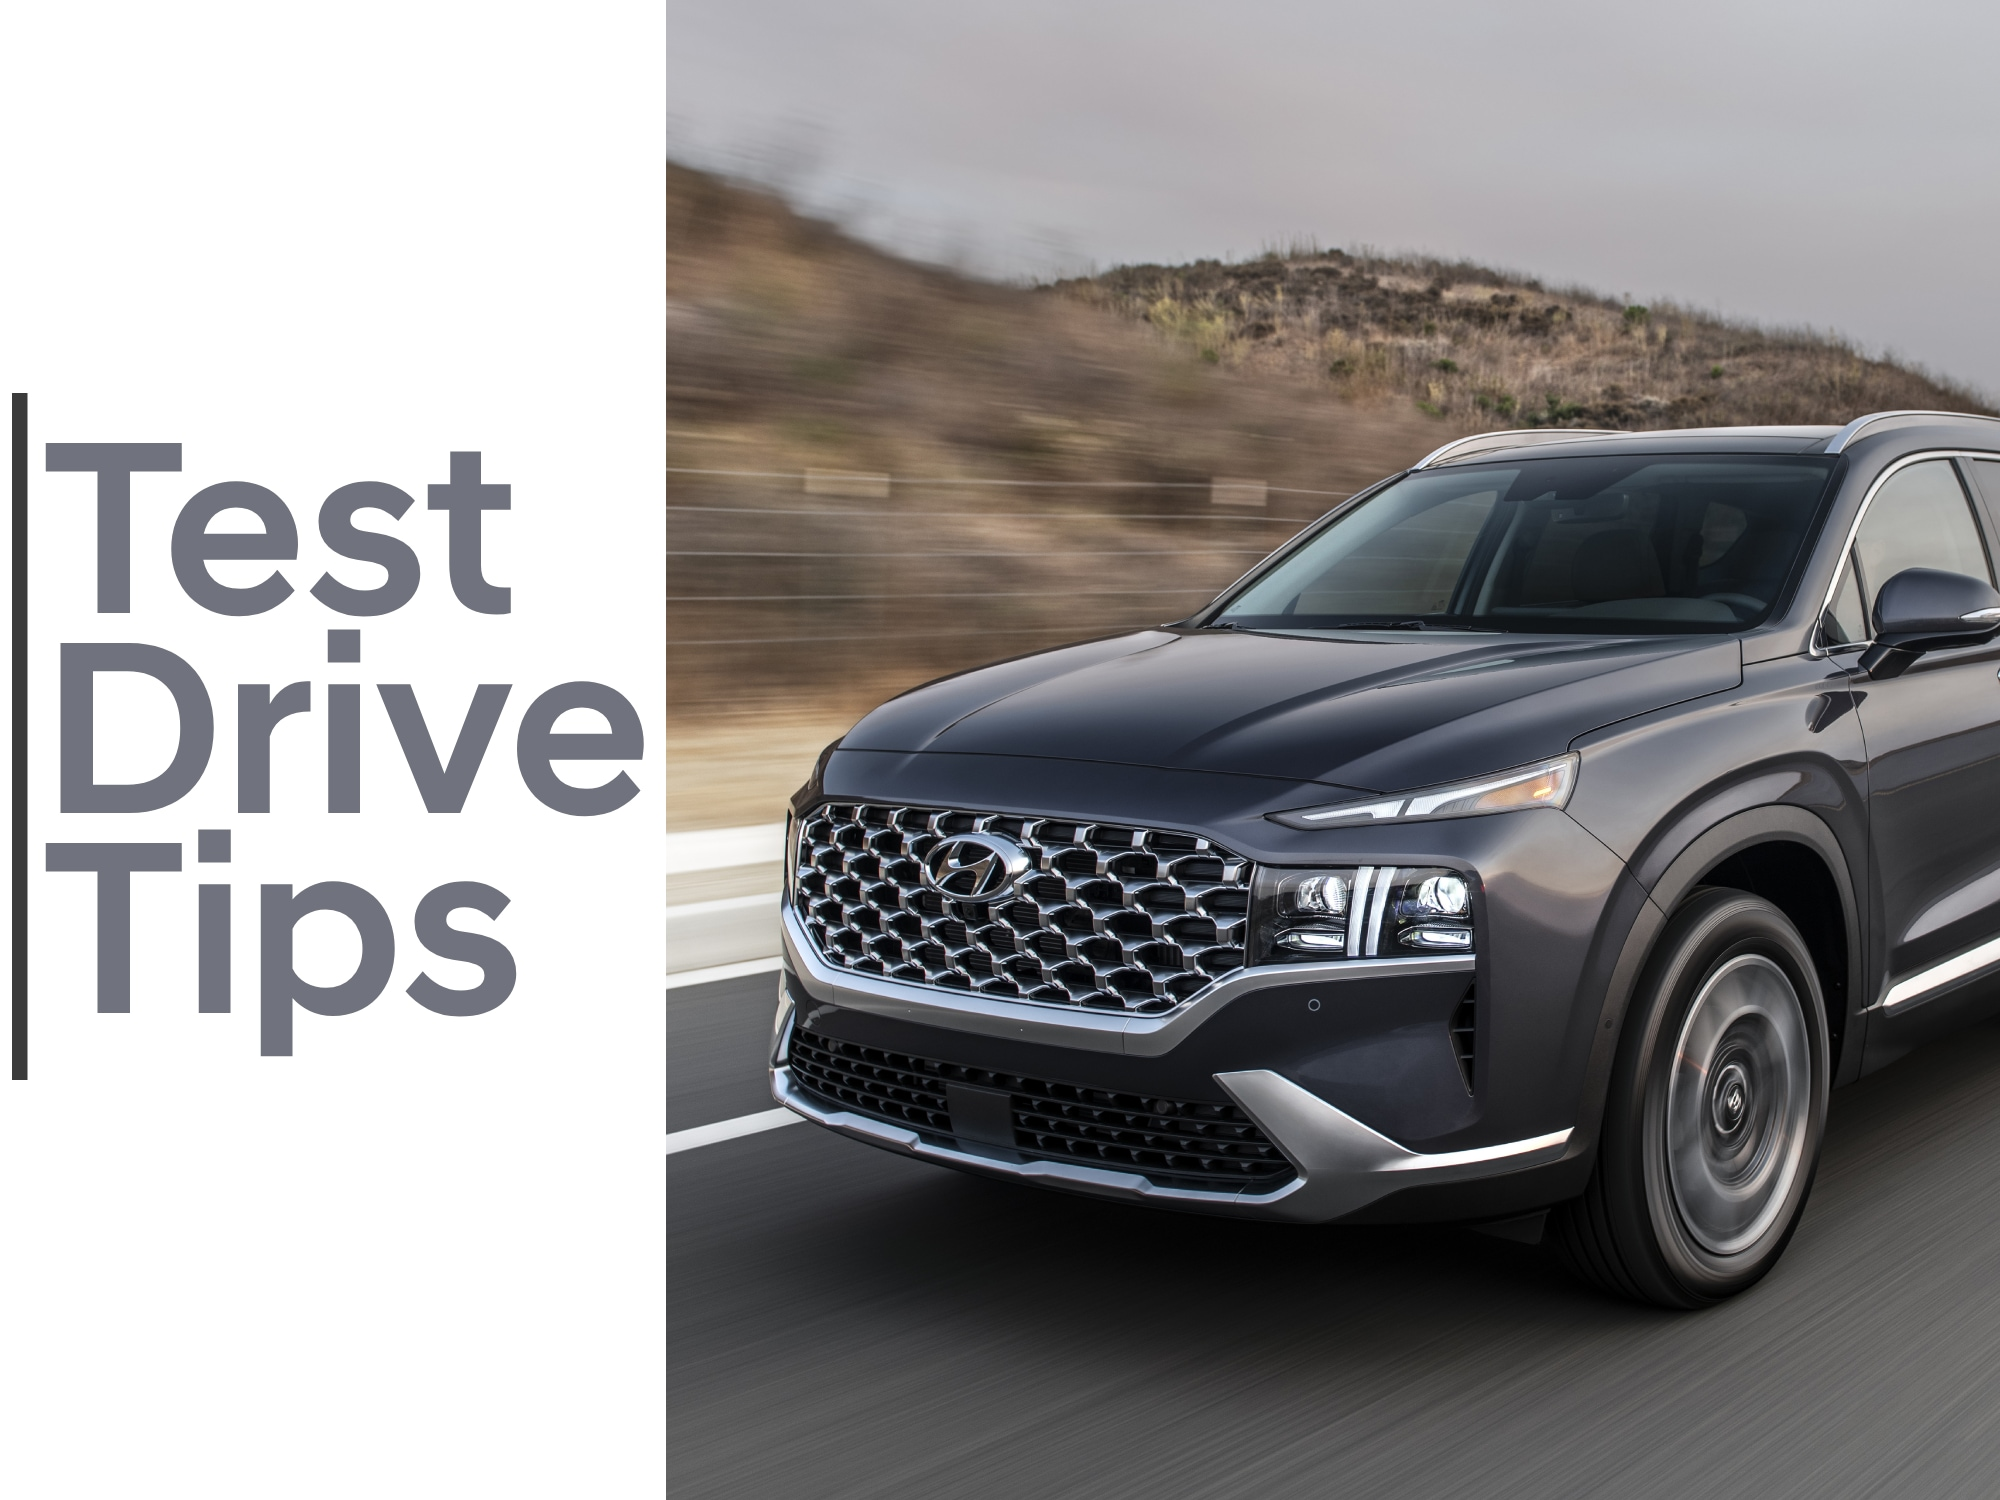 Test Drive Tips in Grey with Front Shot of 2021 Hyundai Santa Fe